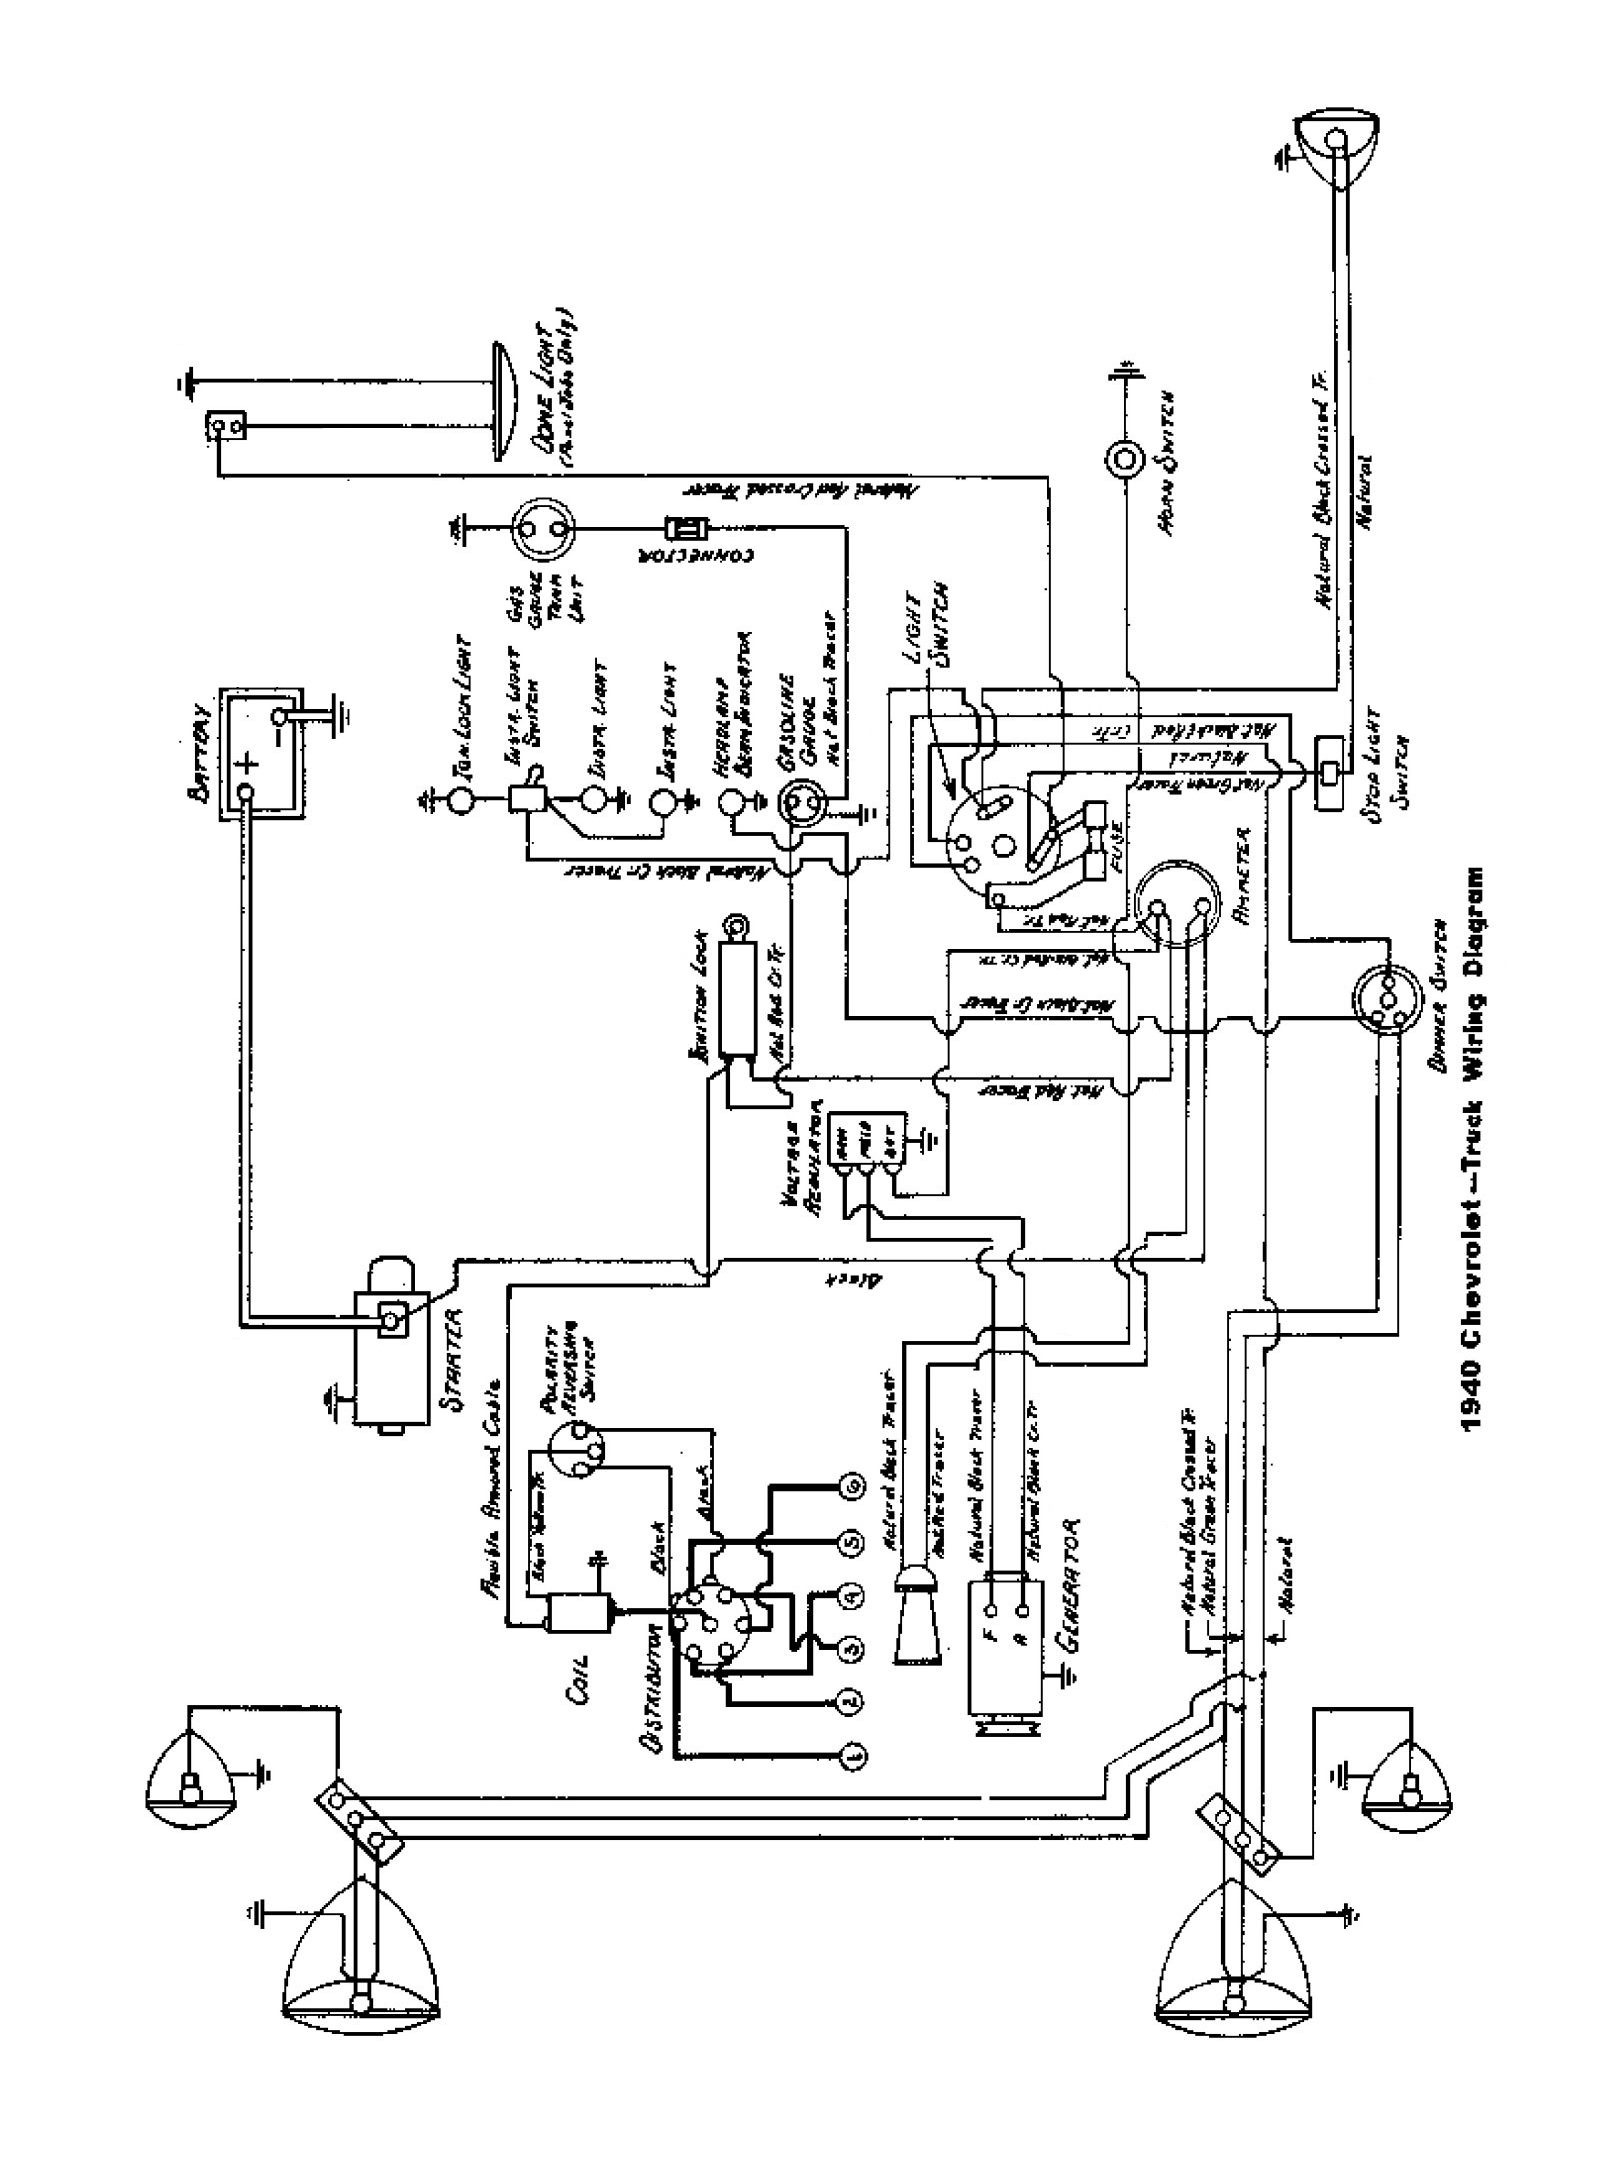 40truck chevy wiring diagrams 1965 chevy wiring diagram at soozxer.org